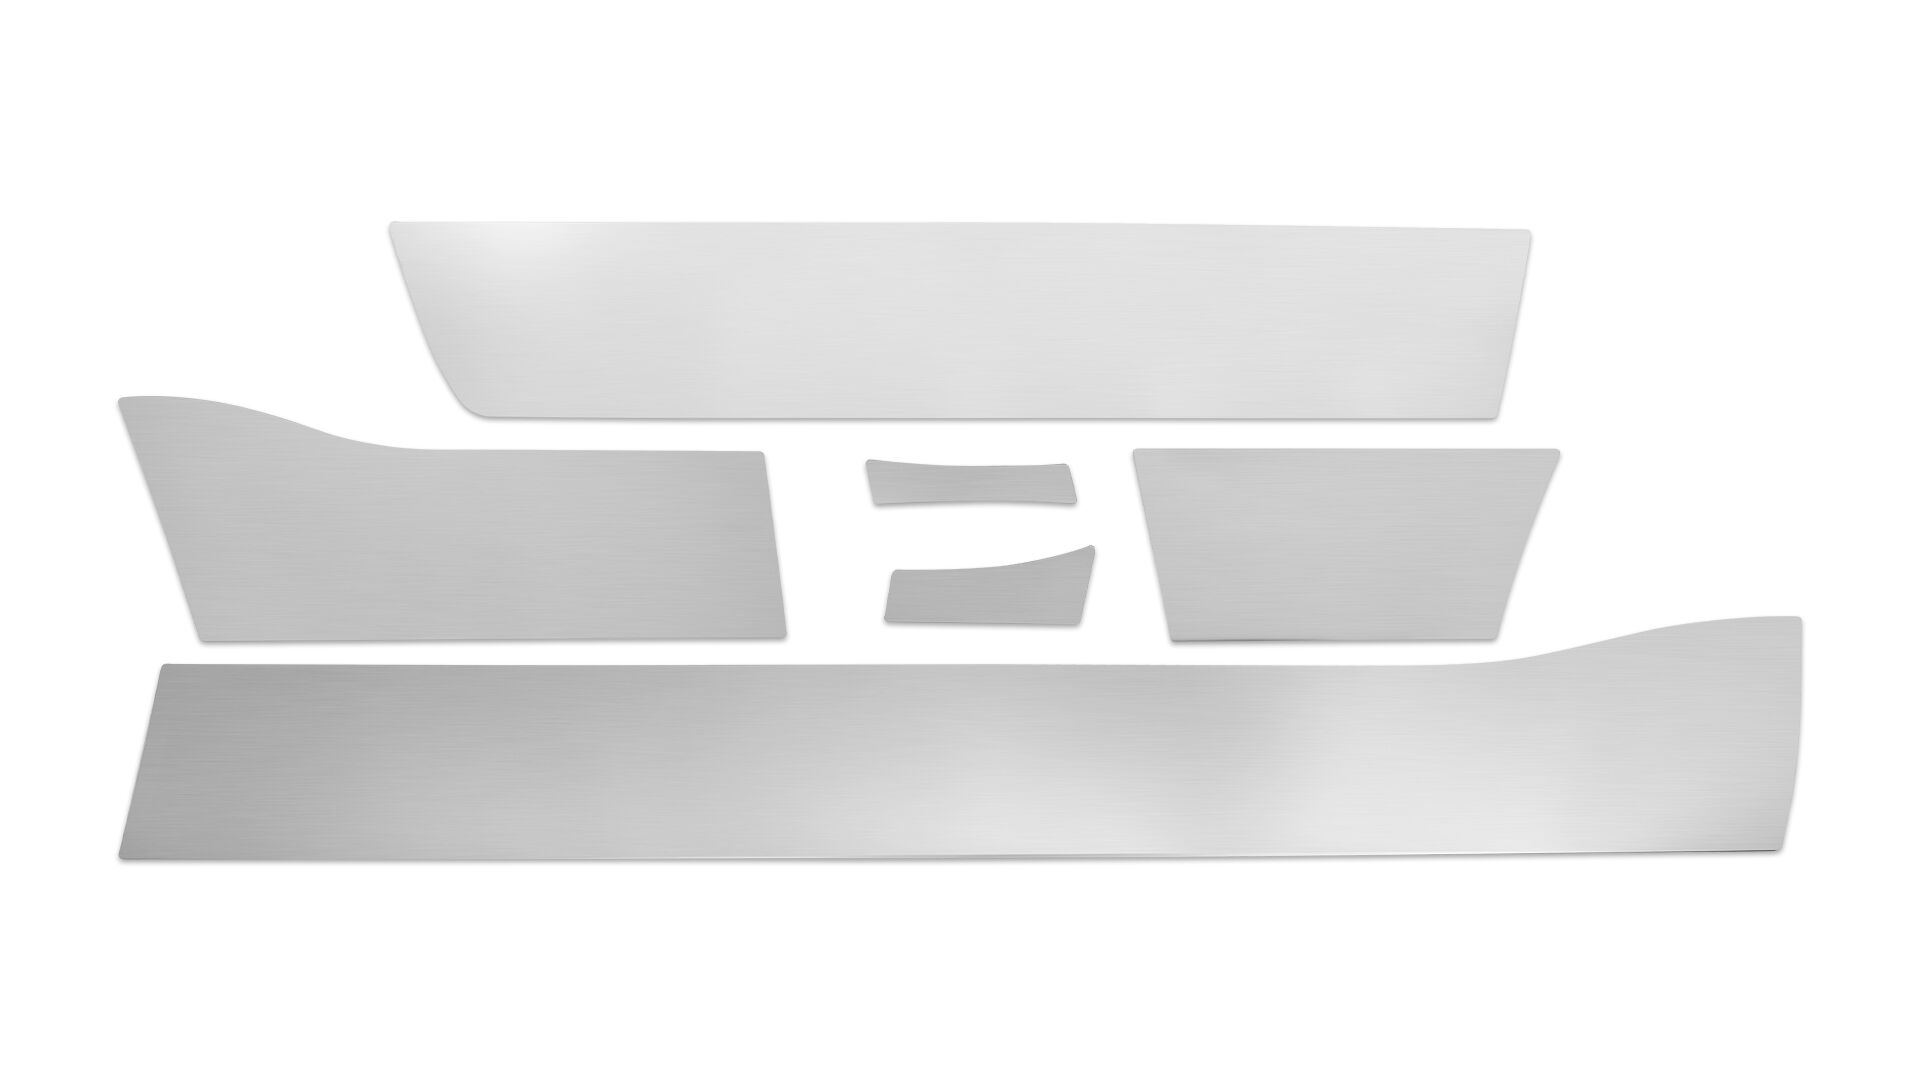 Stainless Rockers Kit - Width & Piece Cut Vary by Application